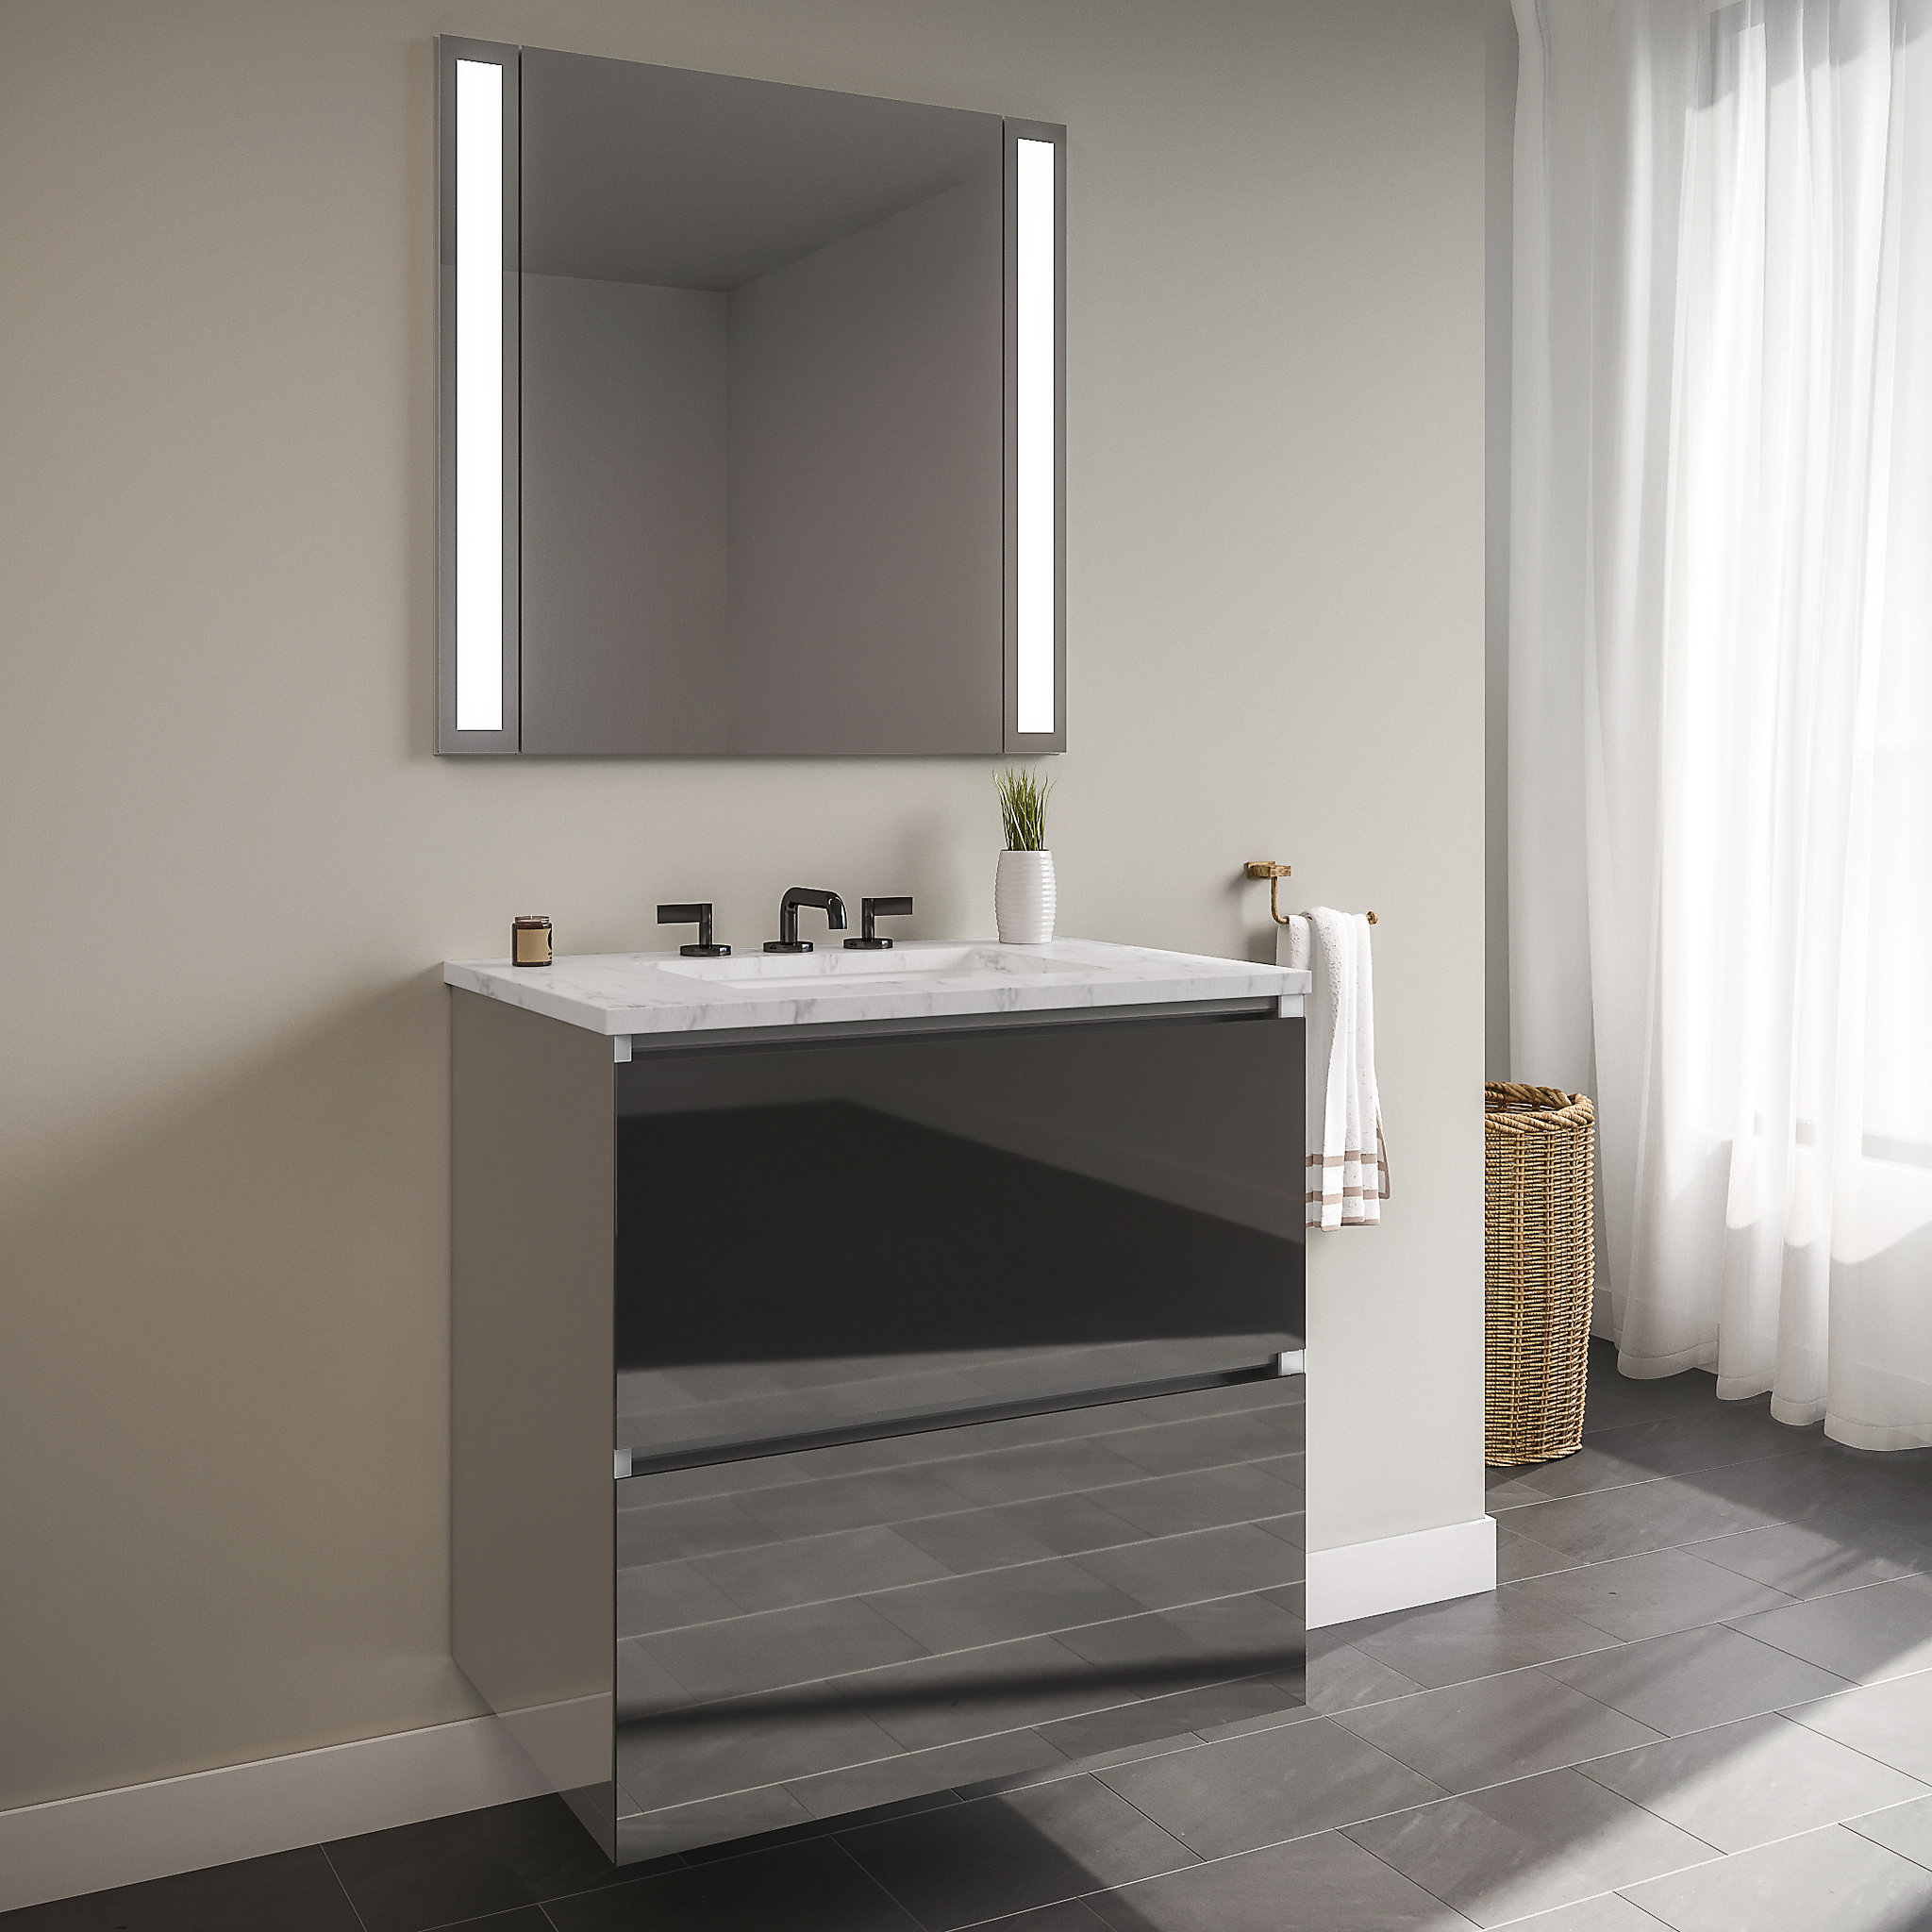 "Robern 30119400NB00002 Curated Cartesian Vanity, 30"" x 15"" x 21"", Two Drawer, Tinted Gray Mirror Glass, Plumbing Drawer, Full Dr"